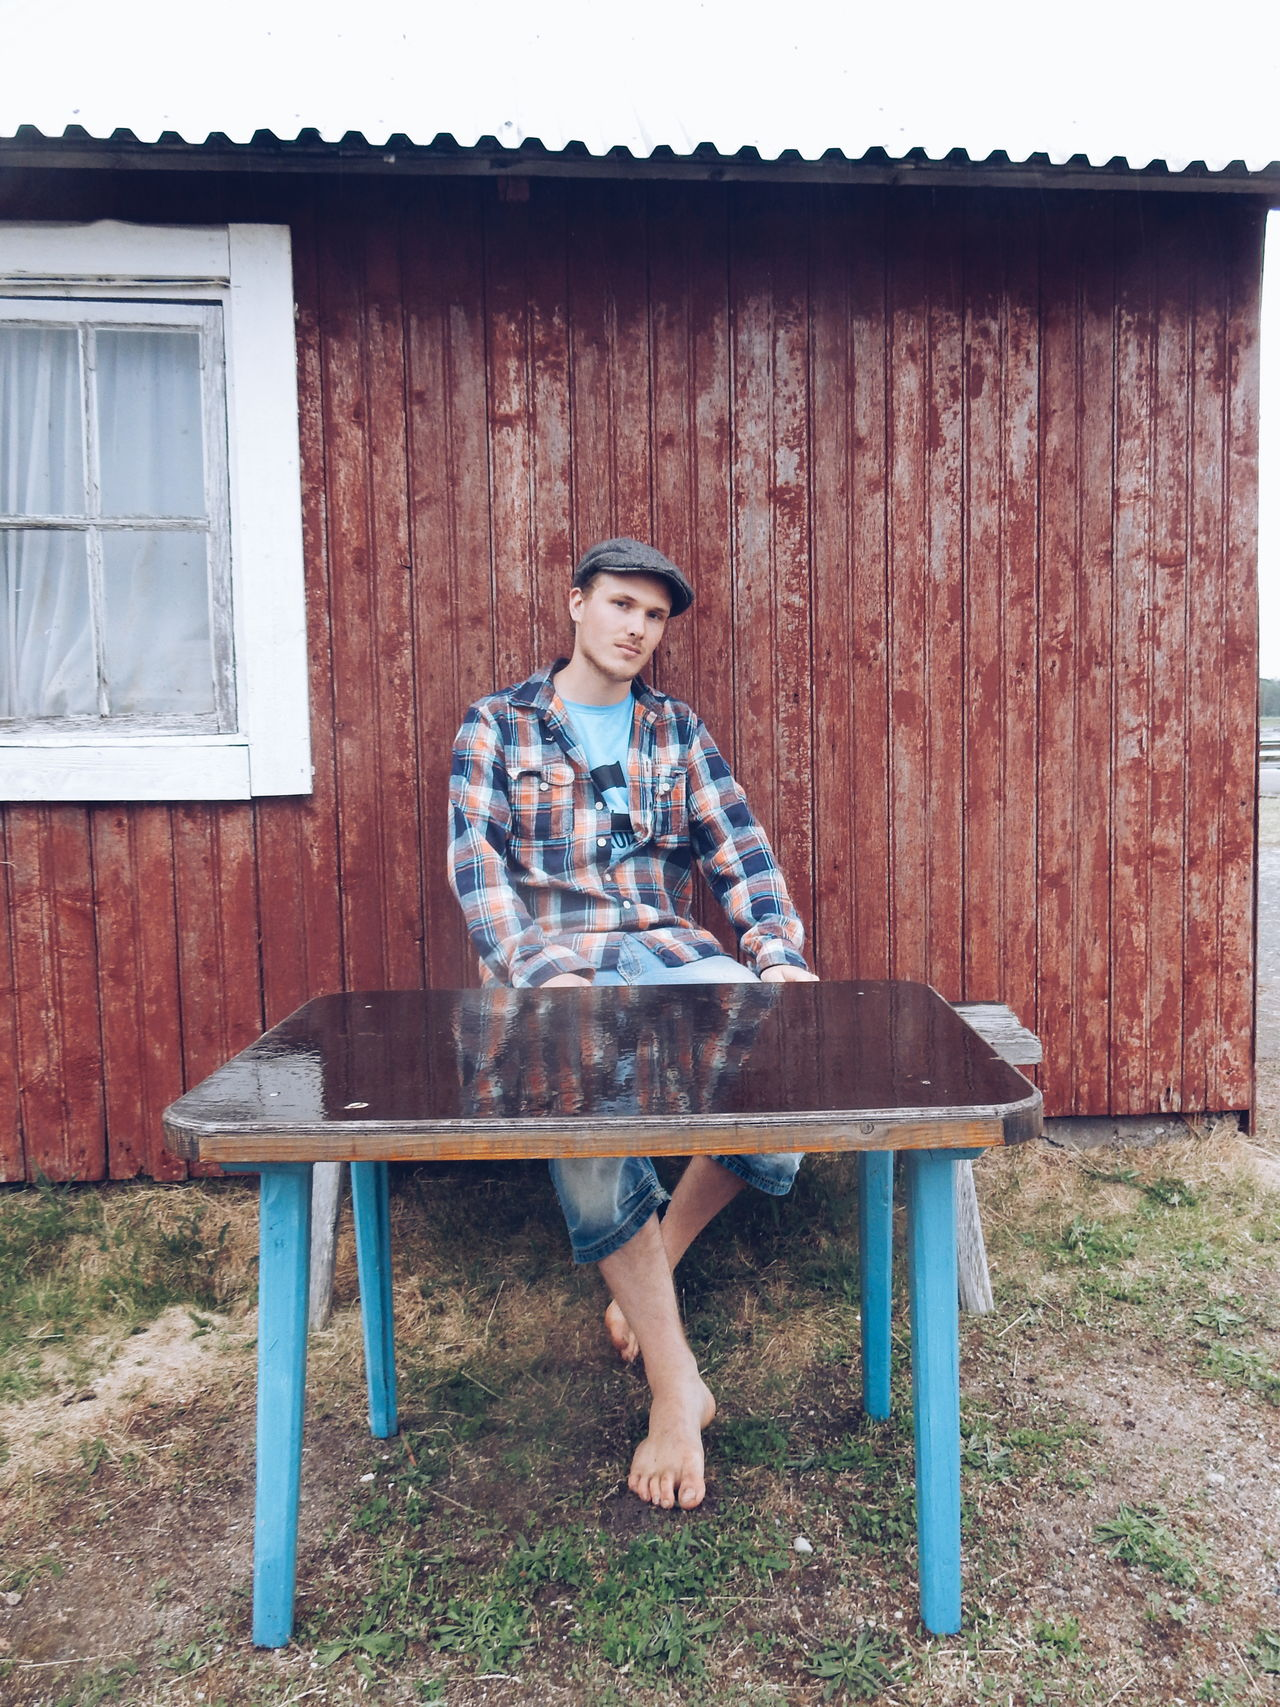 young man sitting on a bench outside a fishing cottage Young Adult Young Man Outdoors Cottage Cottage Life House Fishermenvillage Fisherman Sitting Uniqueness TCPM Live For The Story The Portraitist - 2017 EyeEm Awards